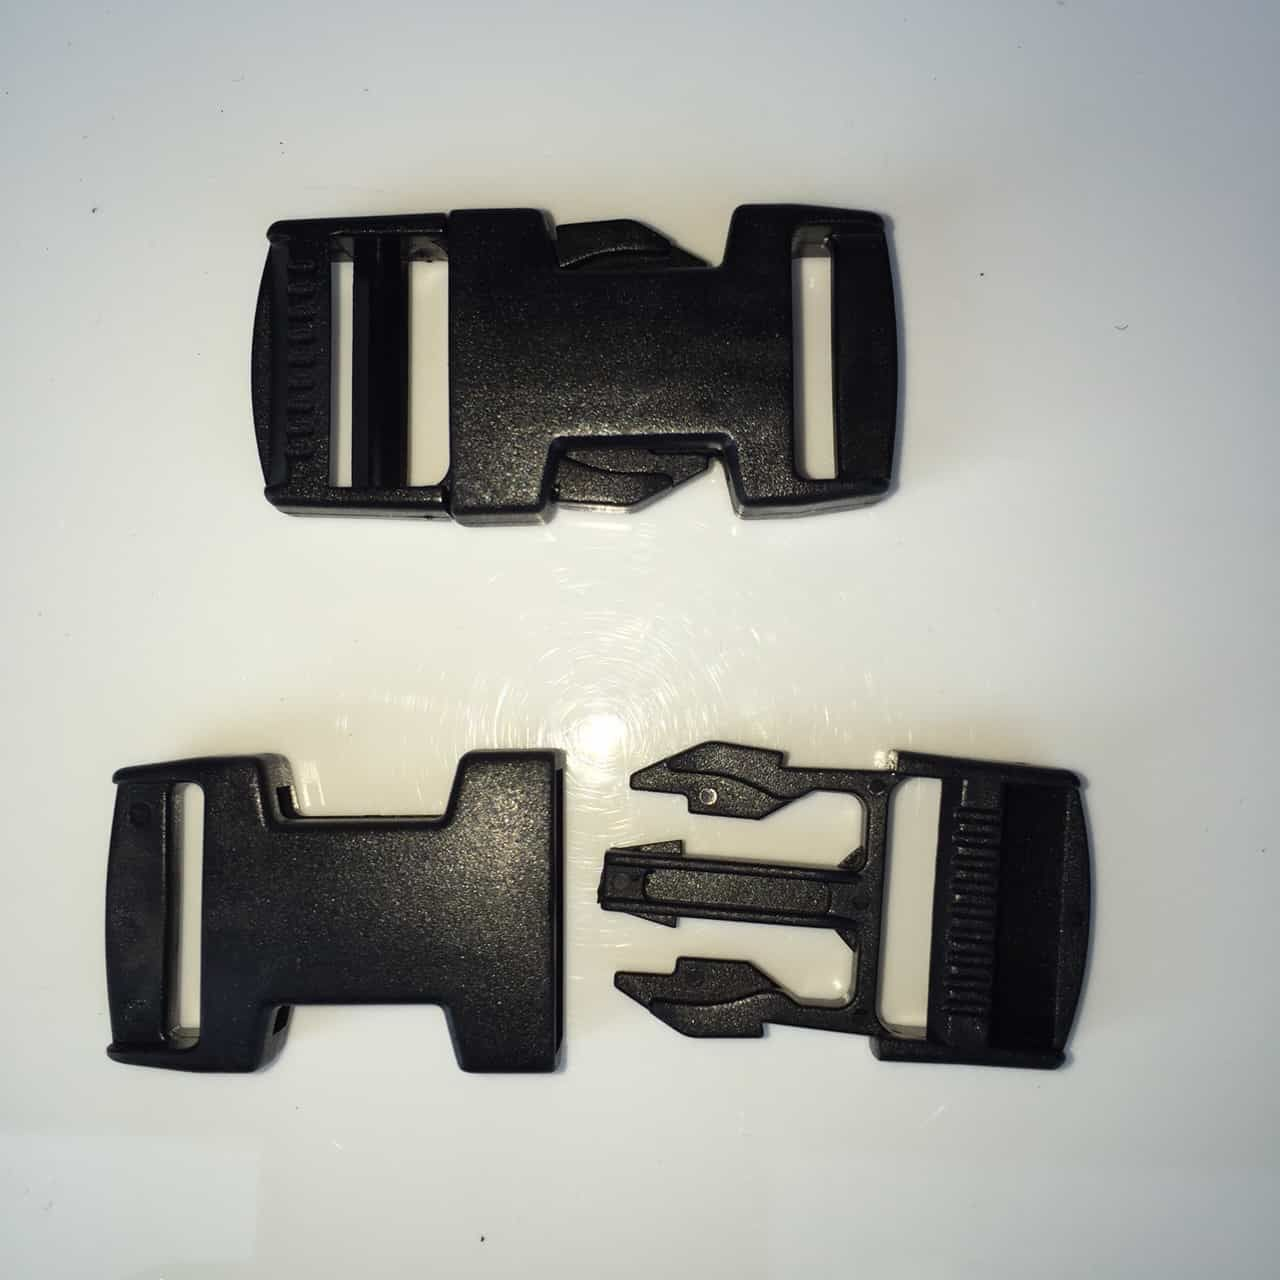 Easy Release Delrin Buckle Black 20mm For Use With Webbing